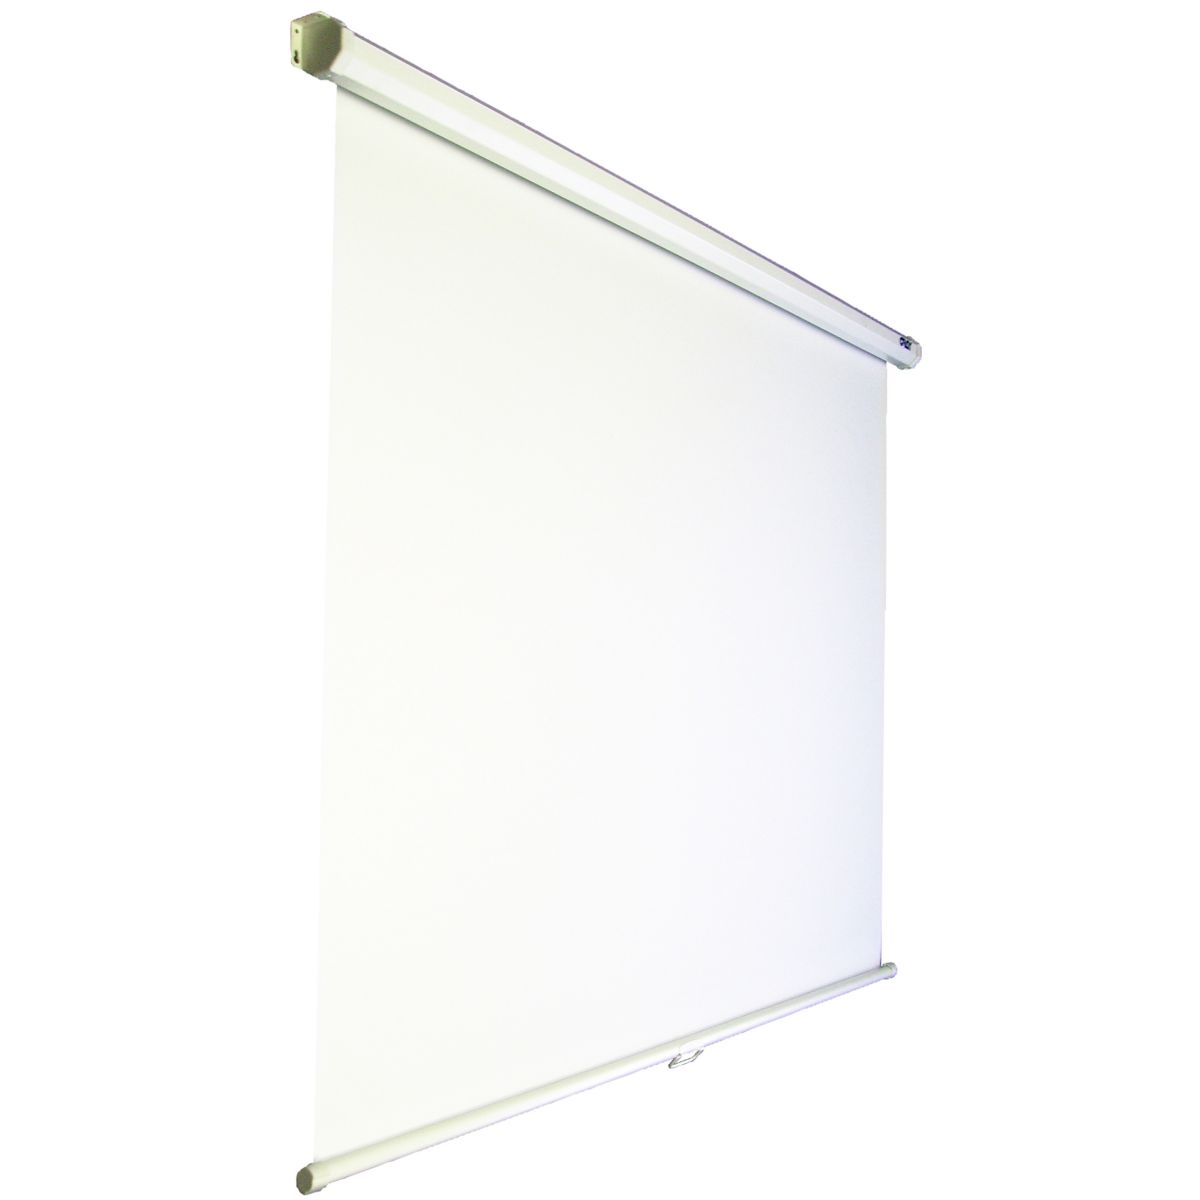 Ecran de projection oray mpp01 180x180 manuel (photo)